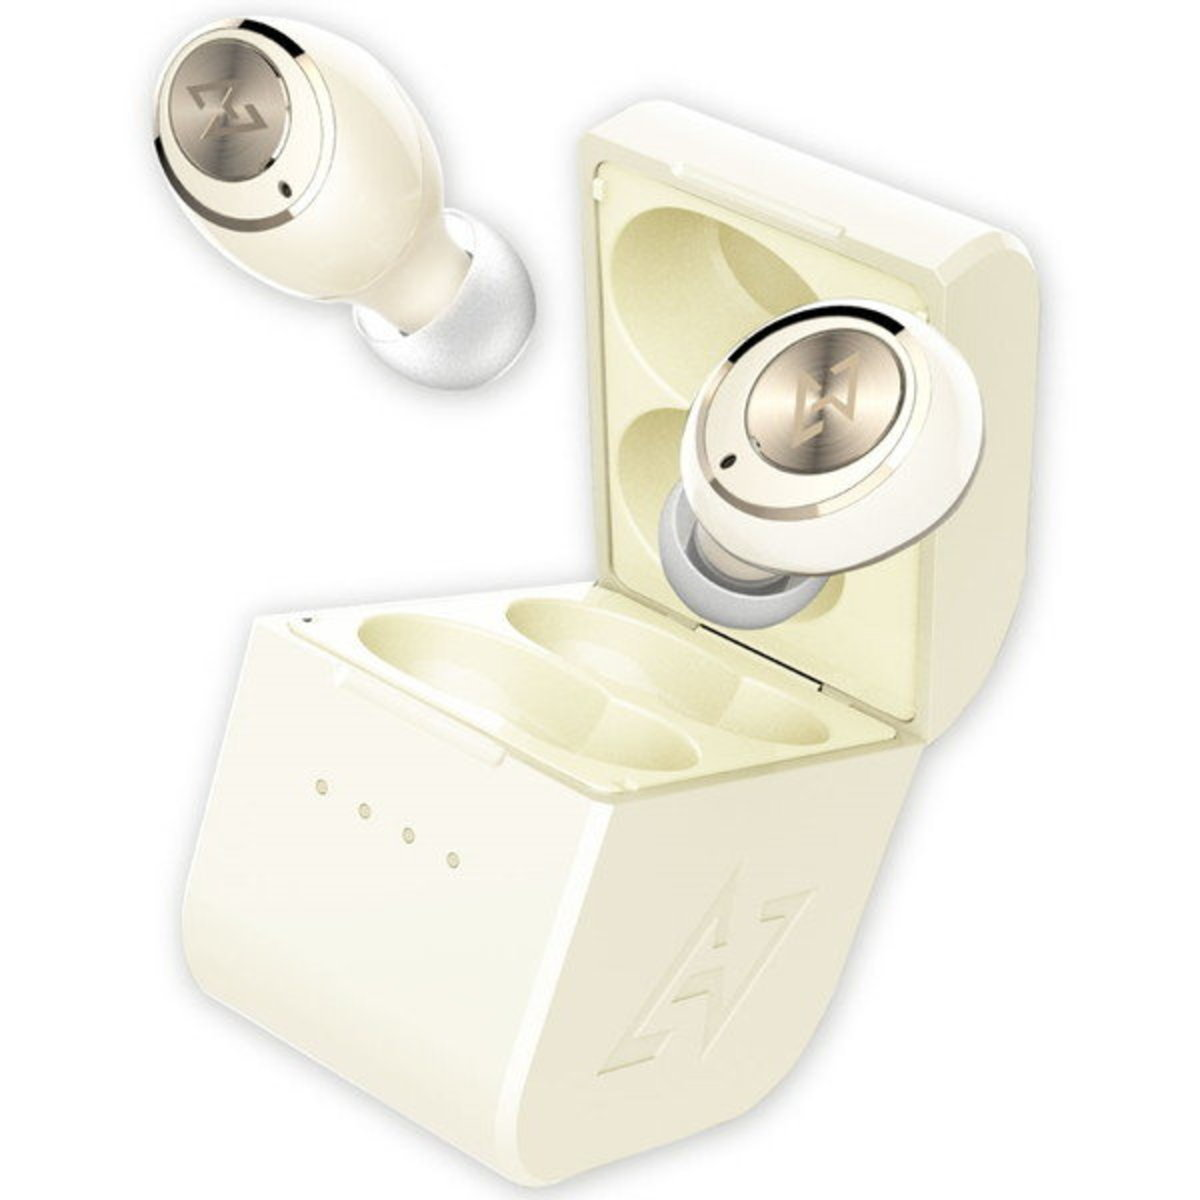 TE-D01g aptX/ AAC True Wireless Earphones[Gold]